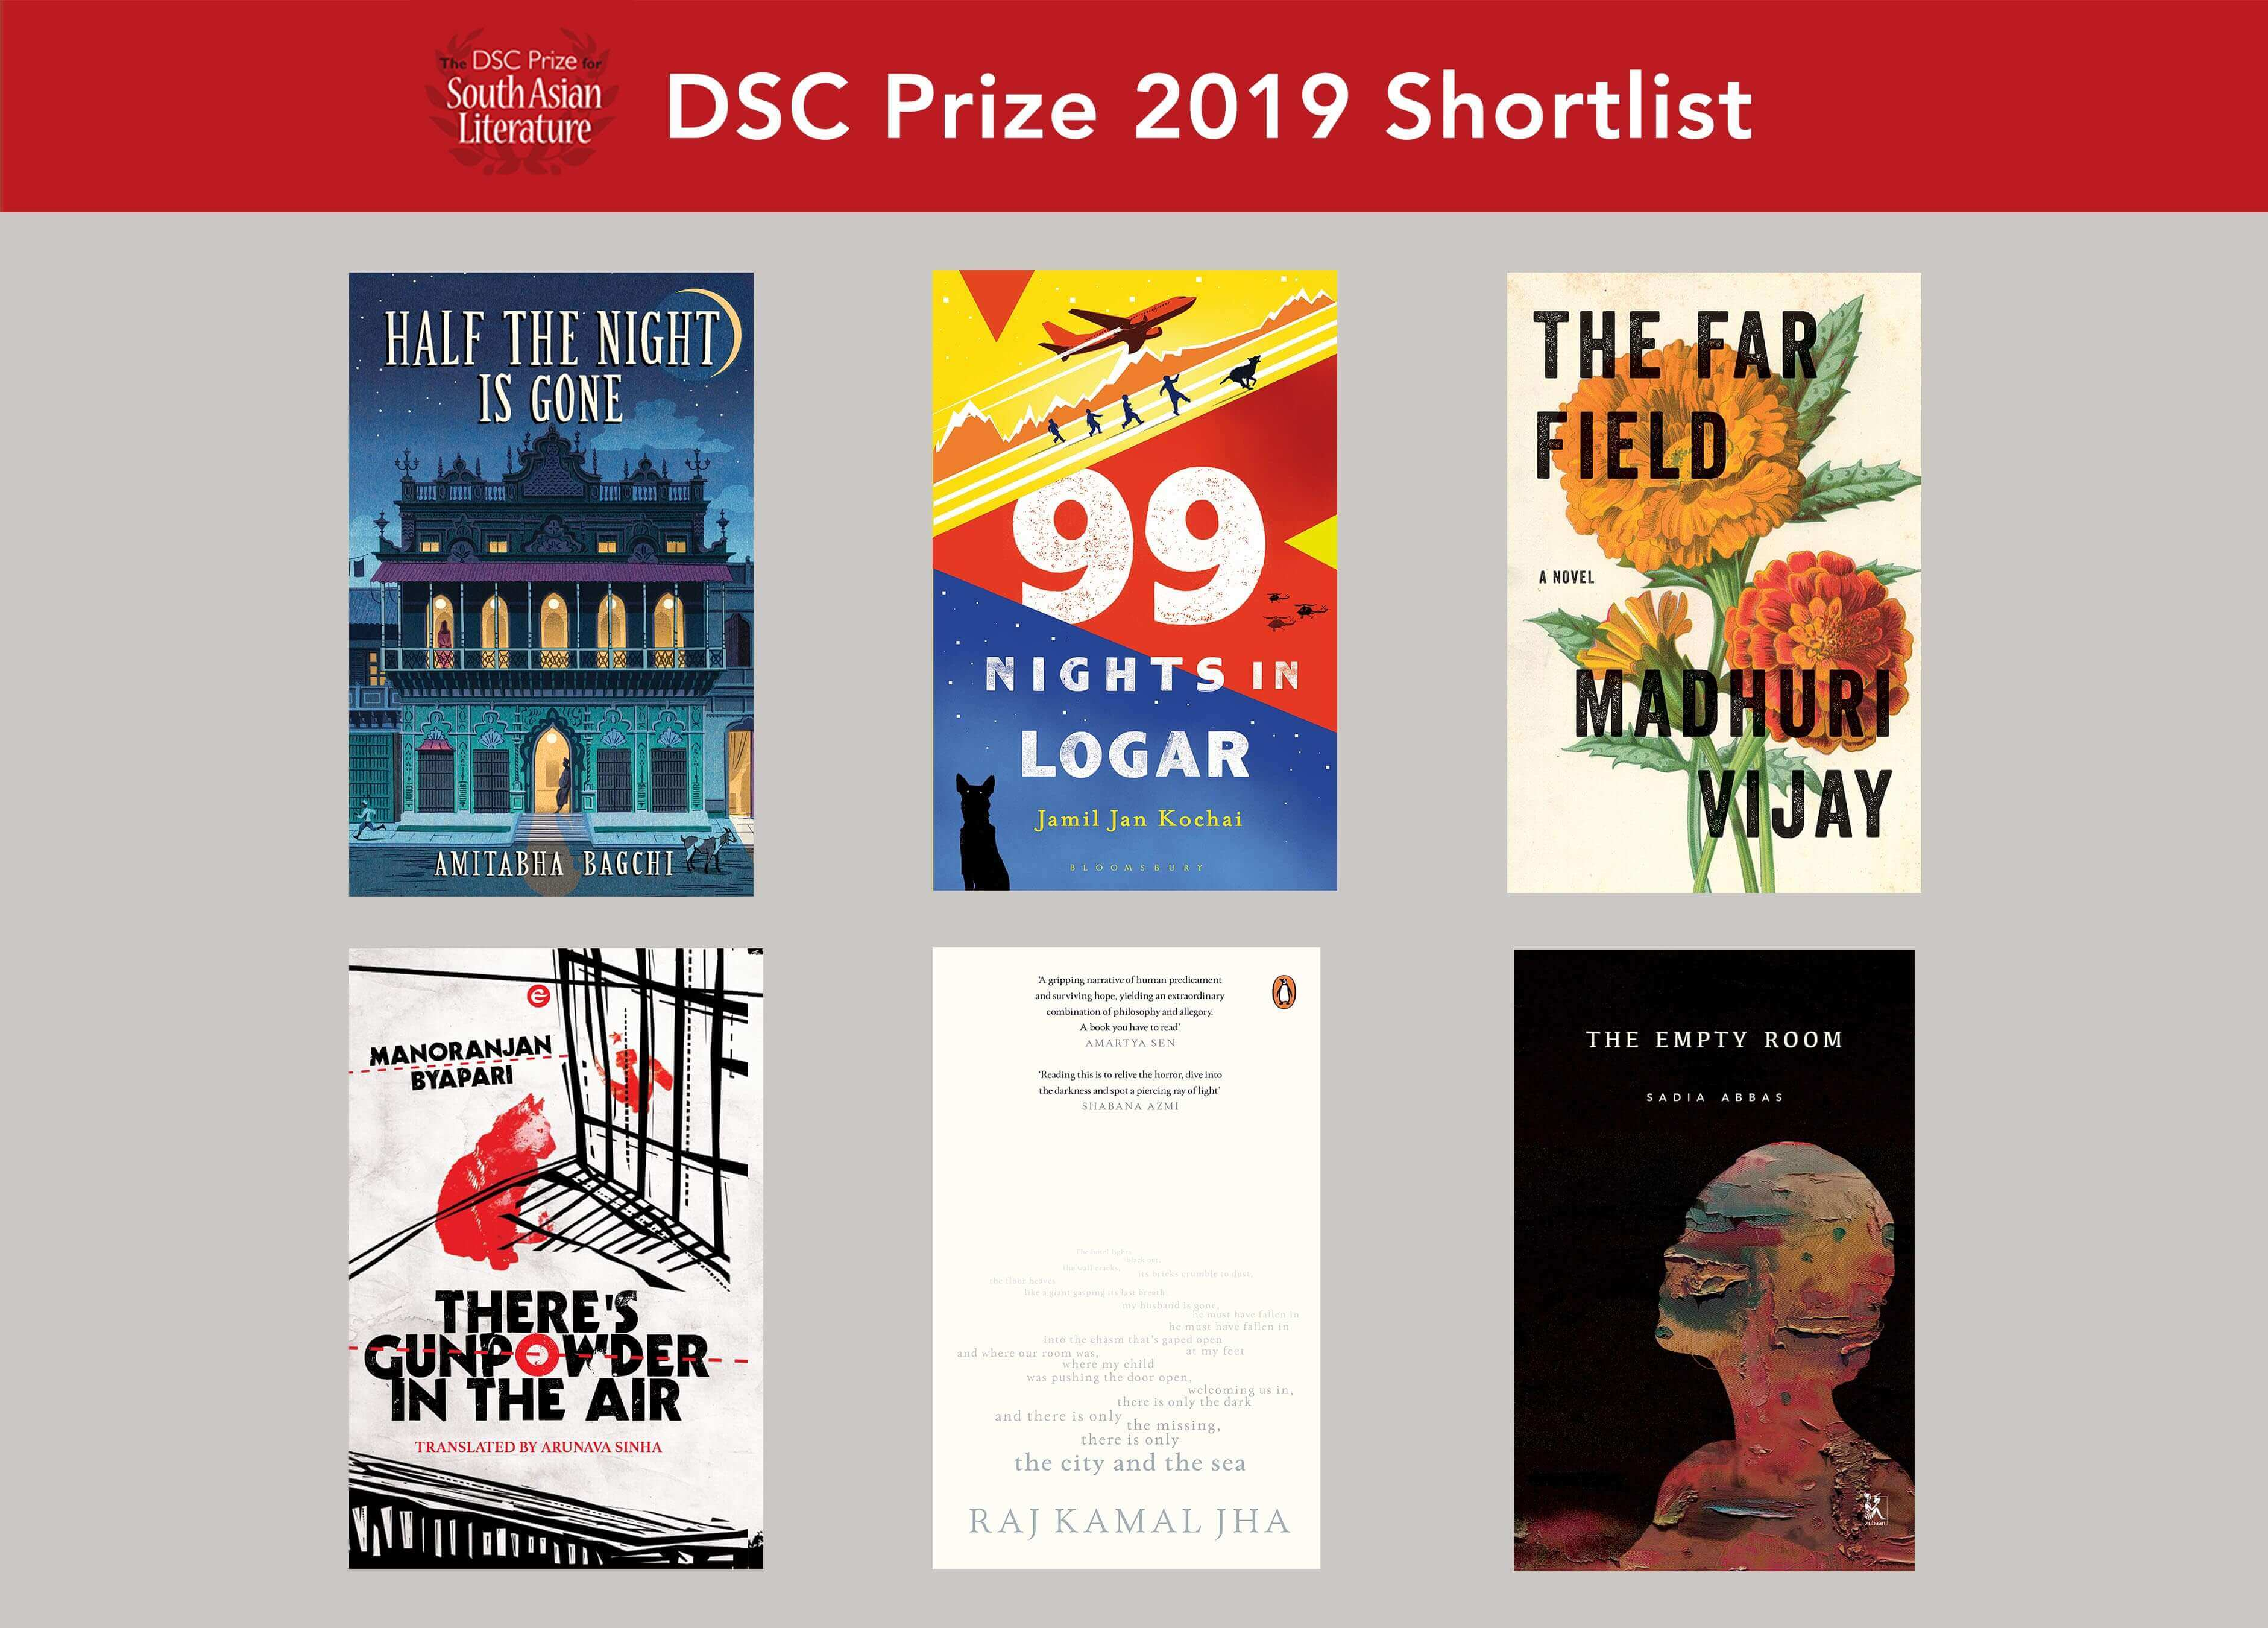 2019 shortlist announced for DSC Prize